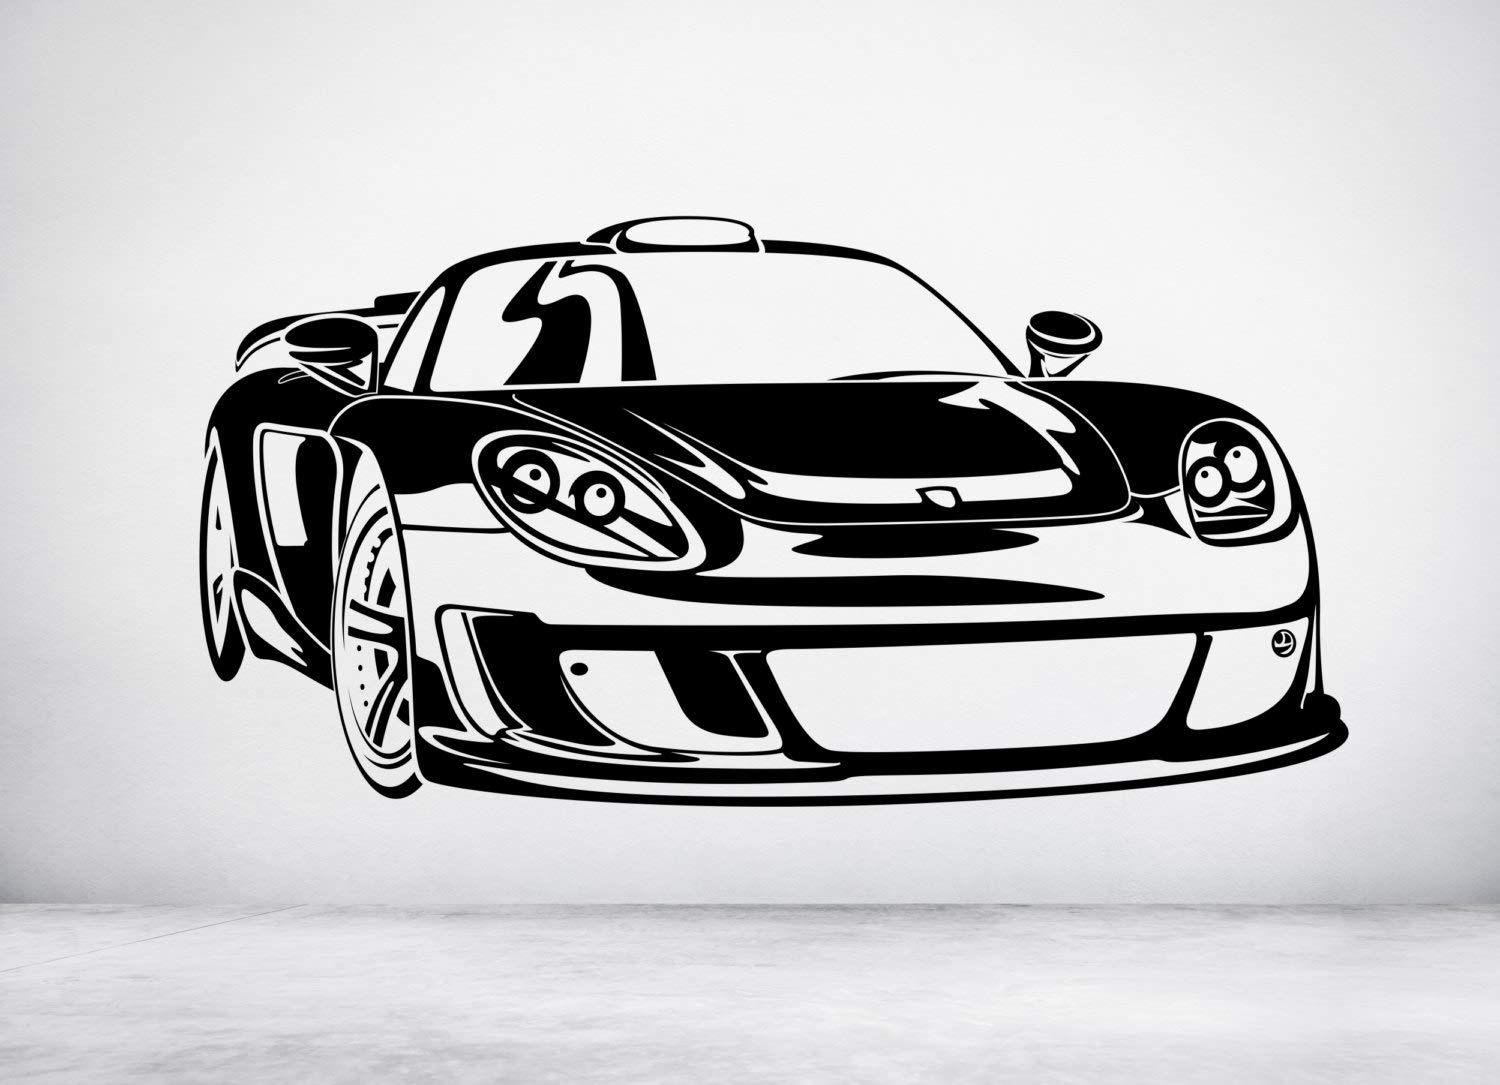 Amazon Com Wall Decals Porsche Carrera Gt Vinyl Wall Art Decal Sticker Any Color And Size Made In Usa Vinyl Wall Art Decals Room Stickers Decal Wall Art [ 1085 x 1500 Pixel ]